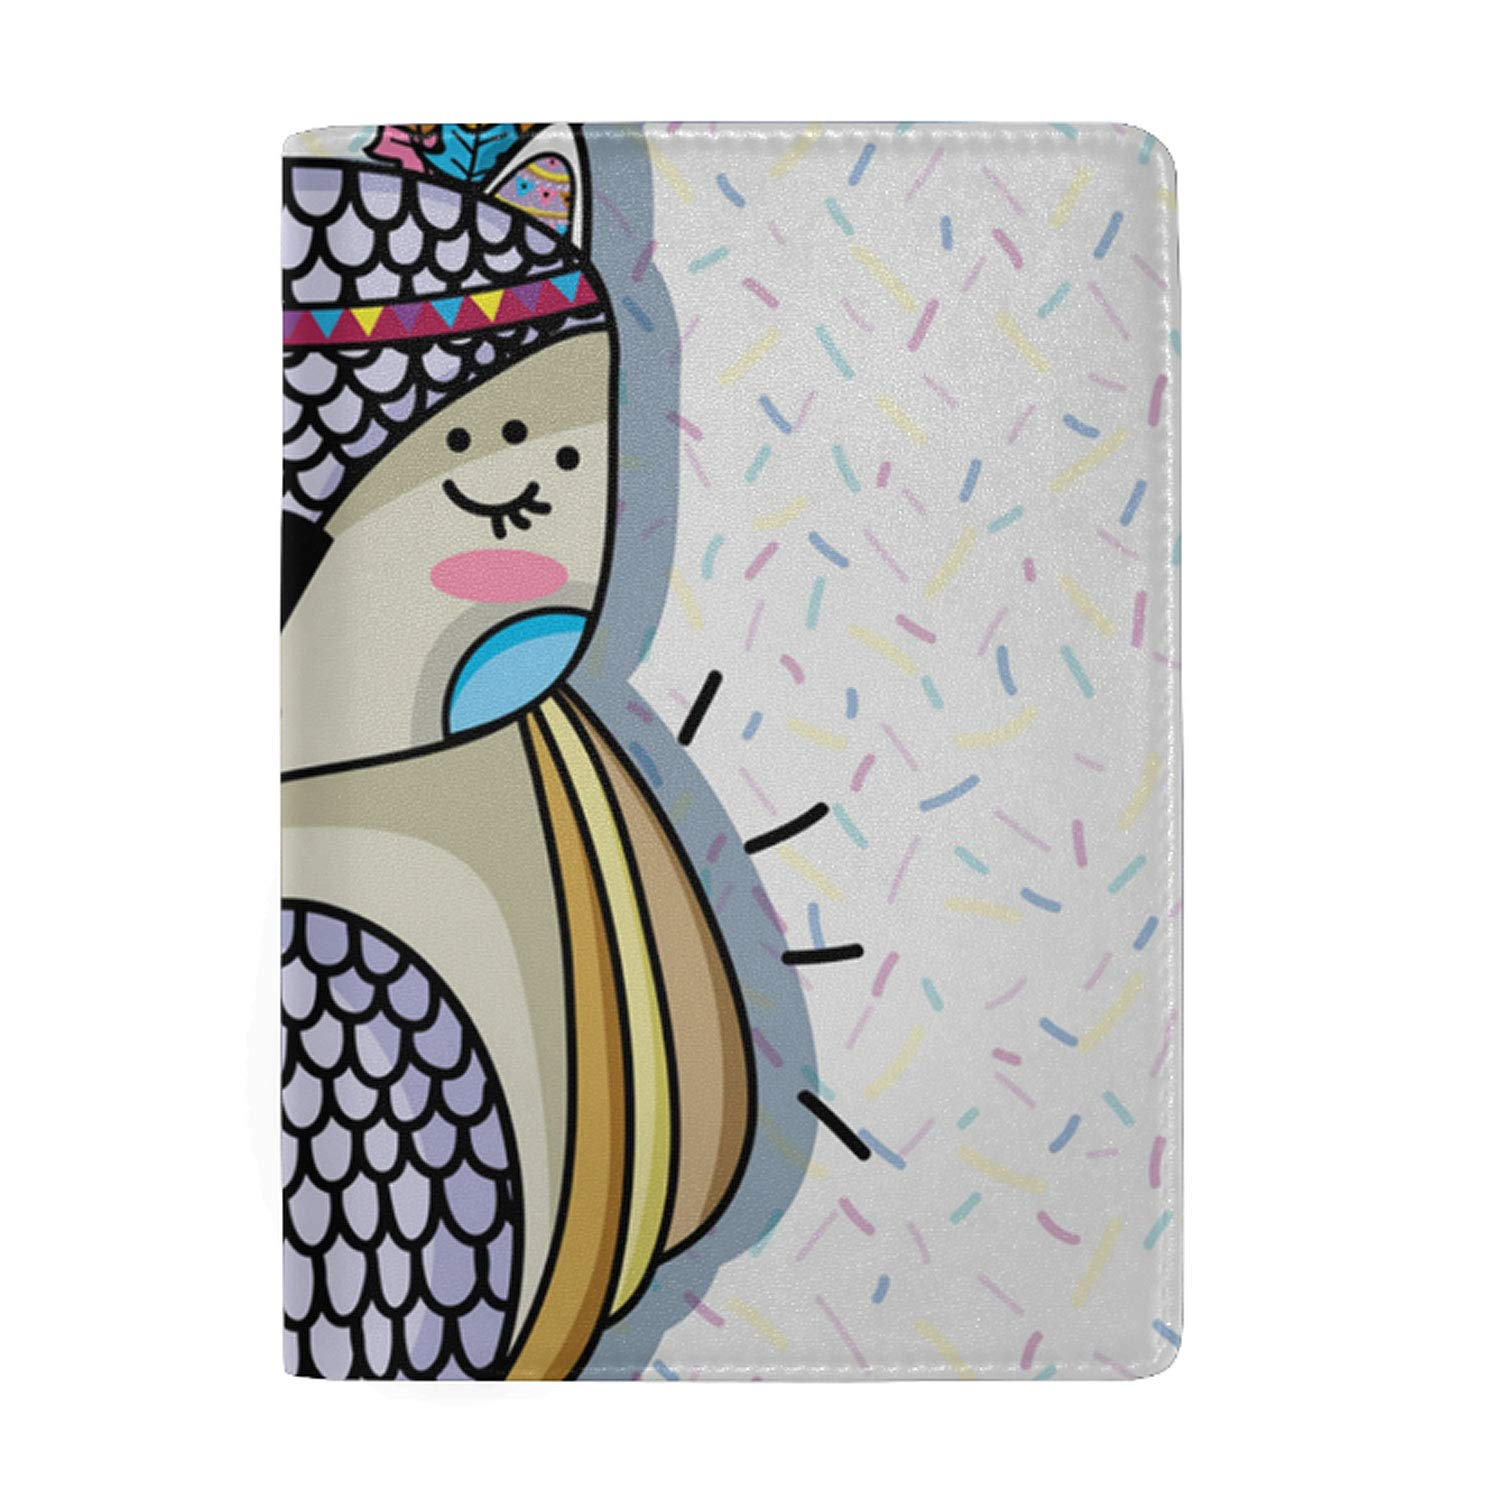 Cute Animals Passport Holder Cover Wallet RFID Blocking Leather Card Case Travel Document Organizer